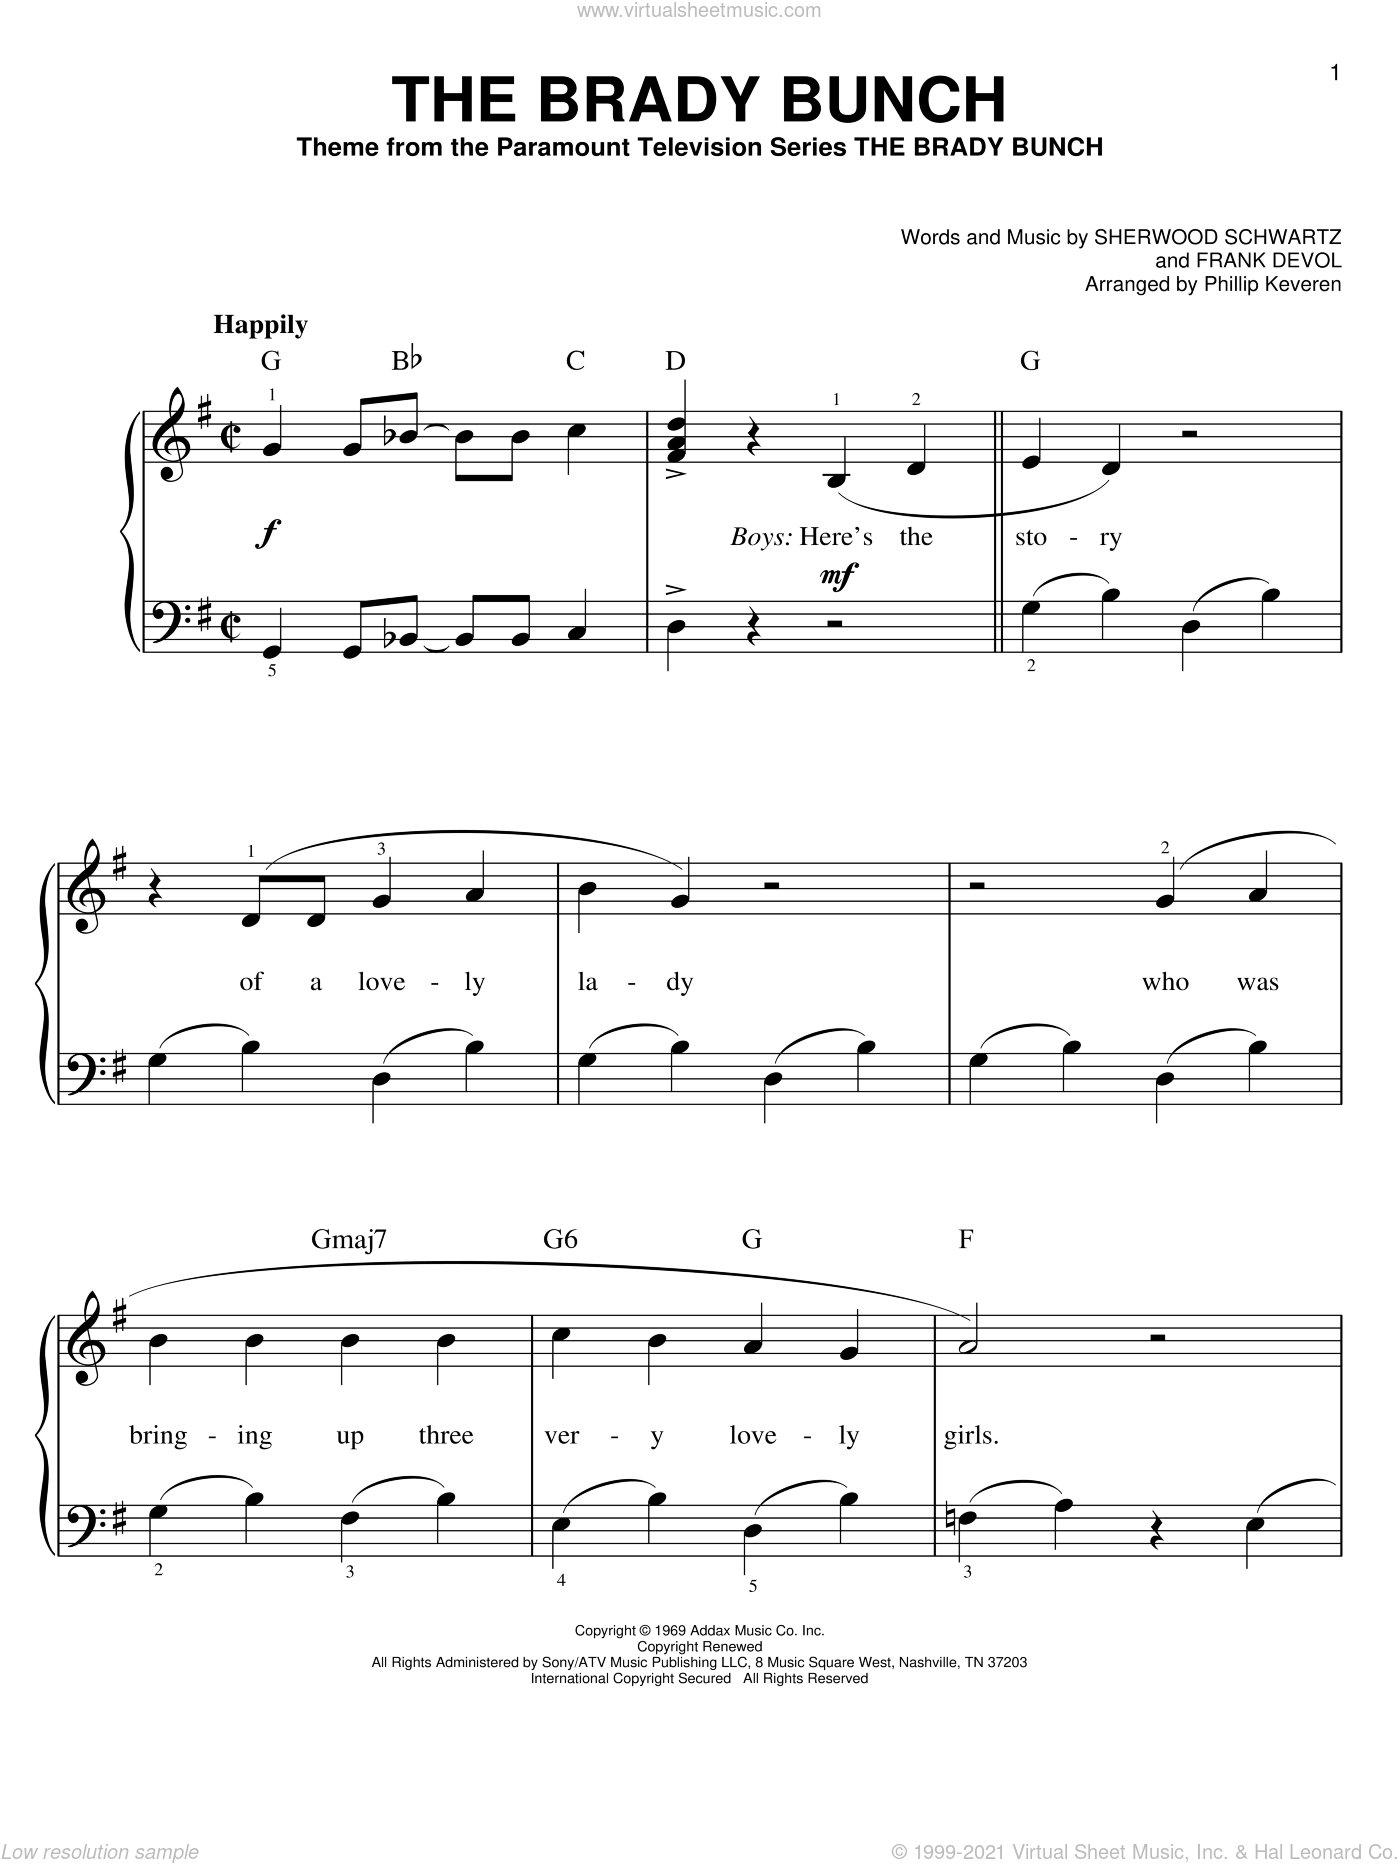 The Brady Bunch sheet music for piano solo by Frank DeVol